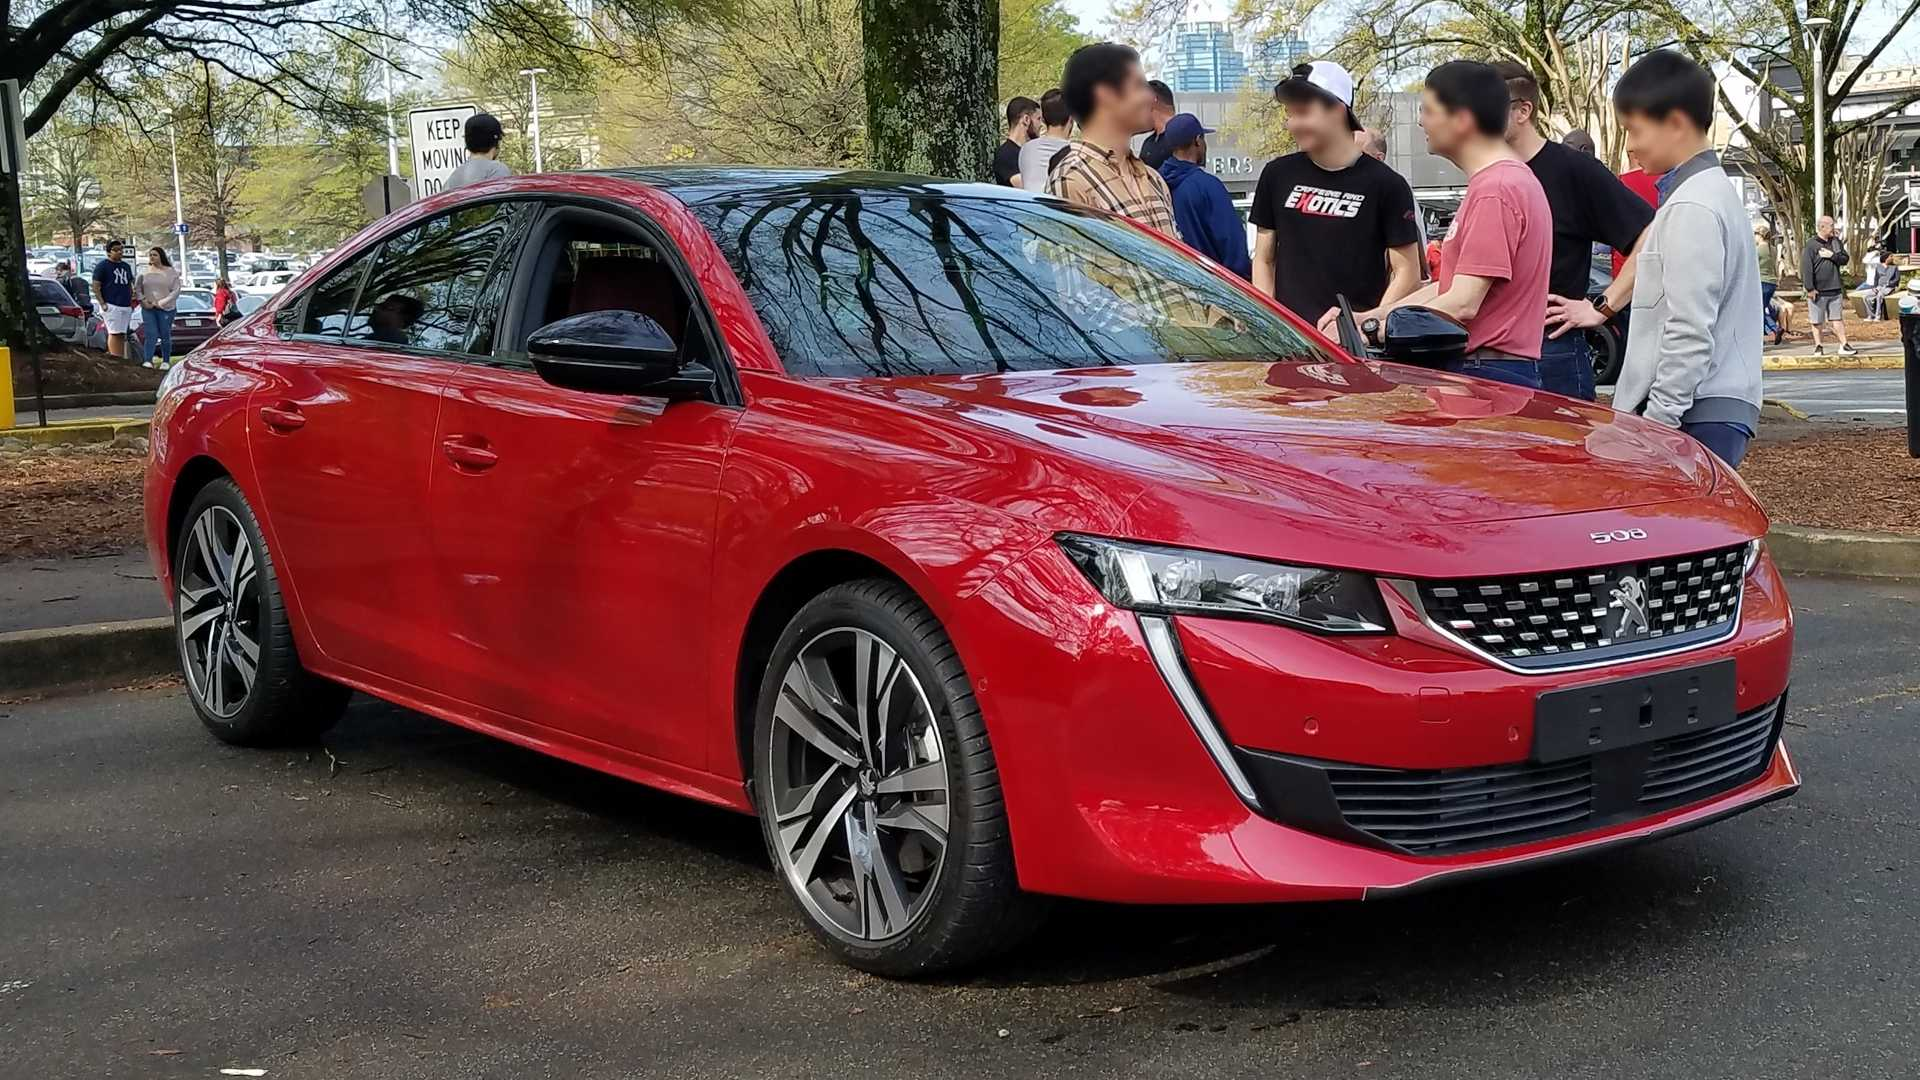 New Peugeot 508 Gt Shows Up To Cars And Coffee In Atlanta